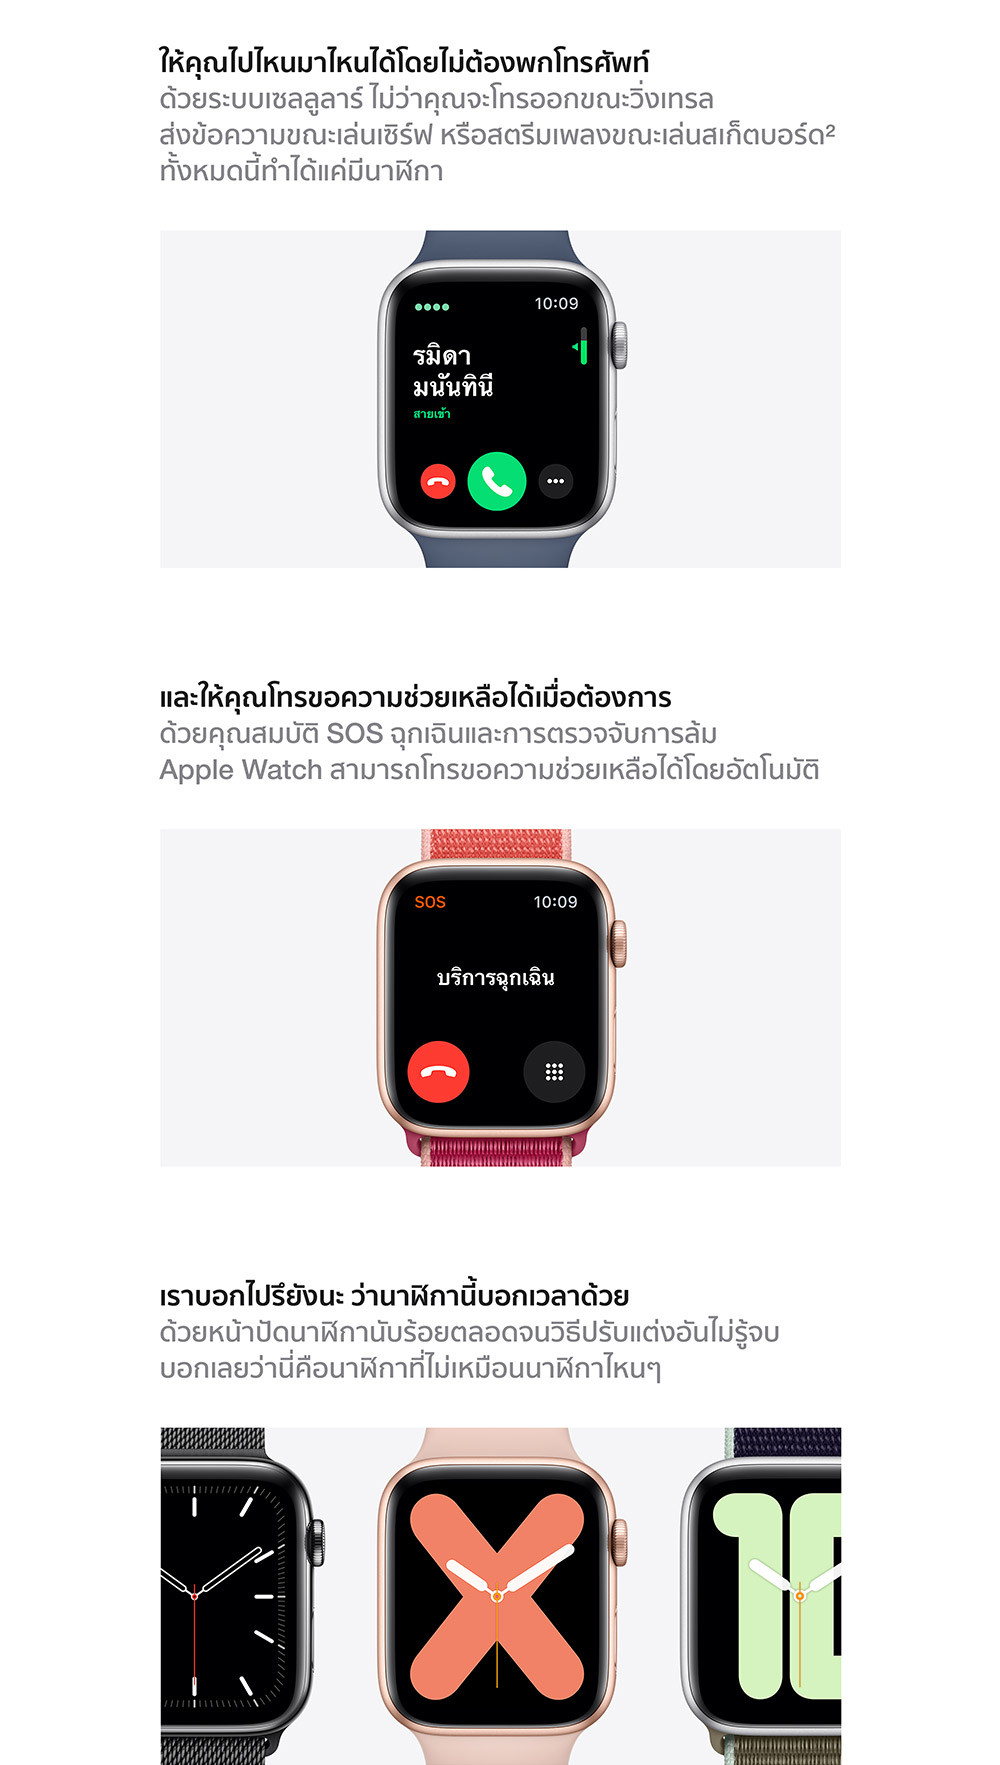 apple-watch-web-product-page_5_2.jpg